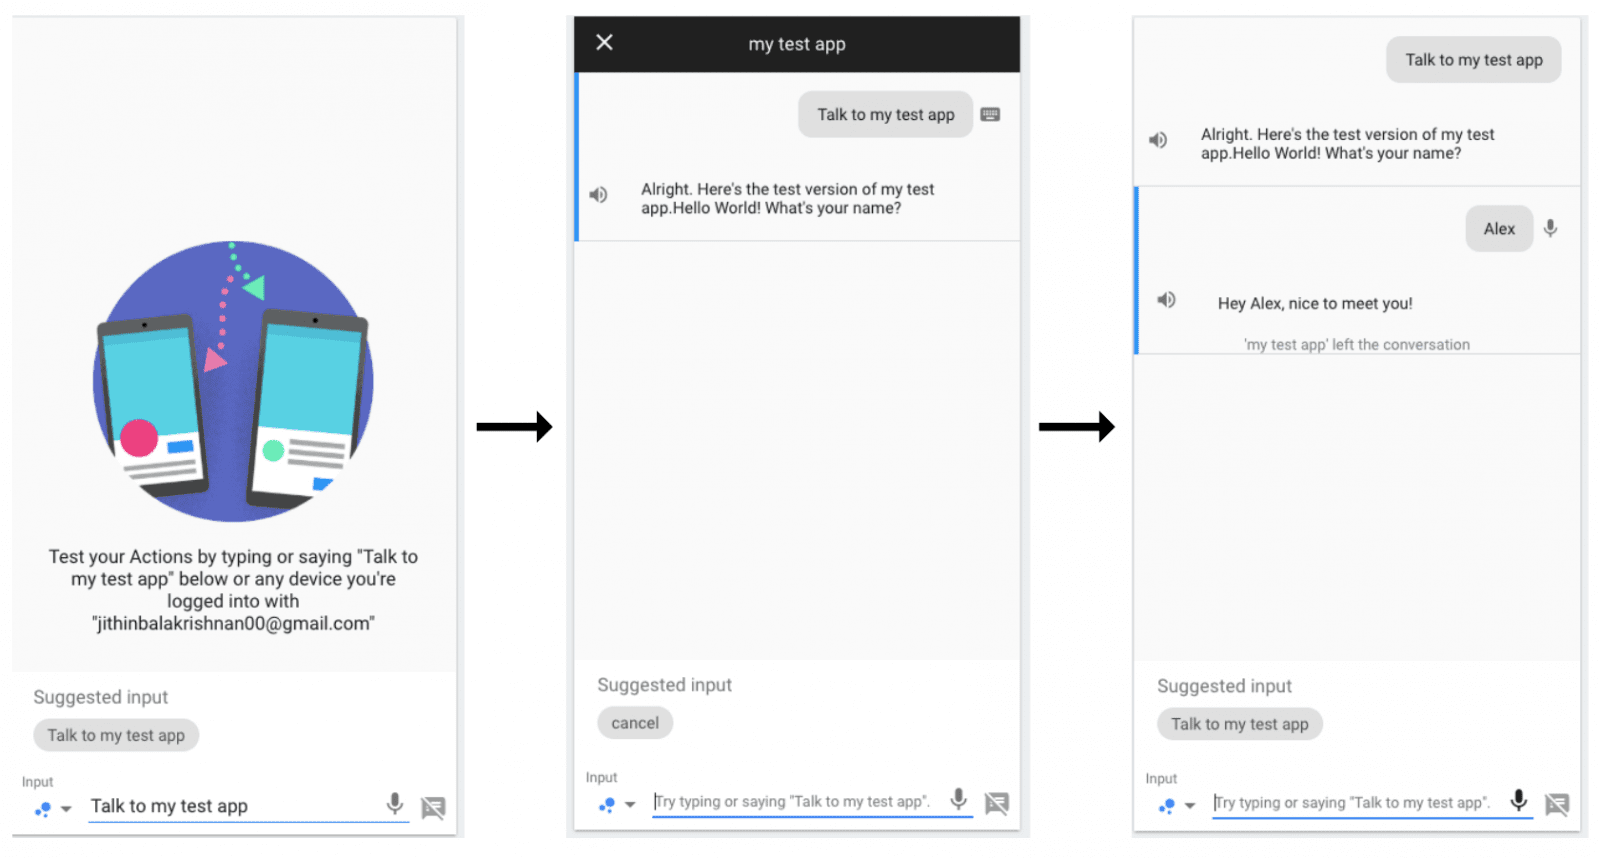 How to Make a Voice Enabled Chatbot? - Kommunicate Blog